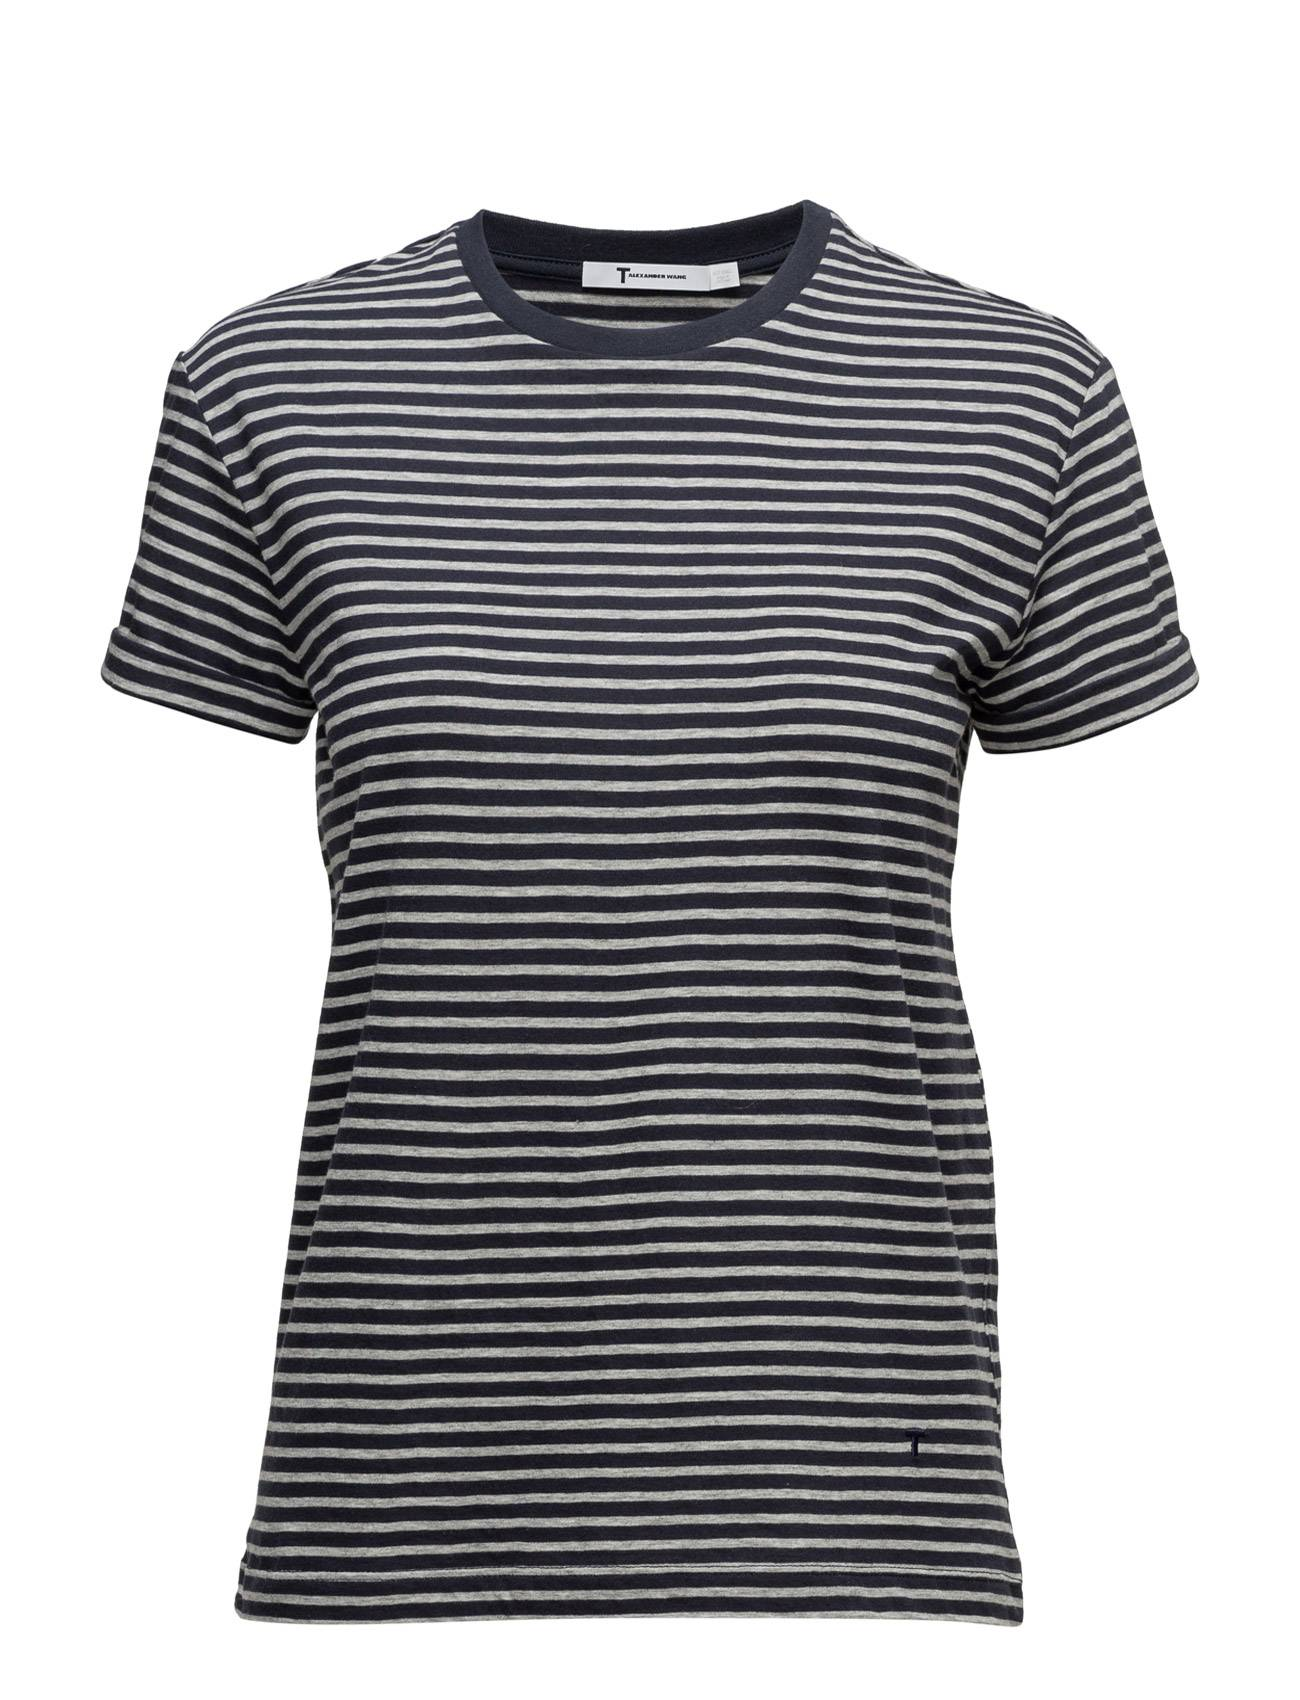 T by Alexander Wang S/S Crewneck Tee